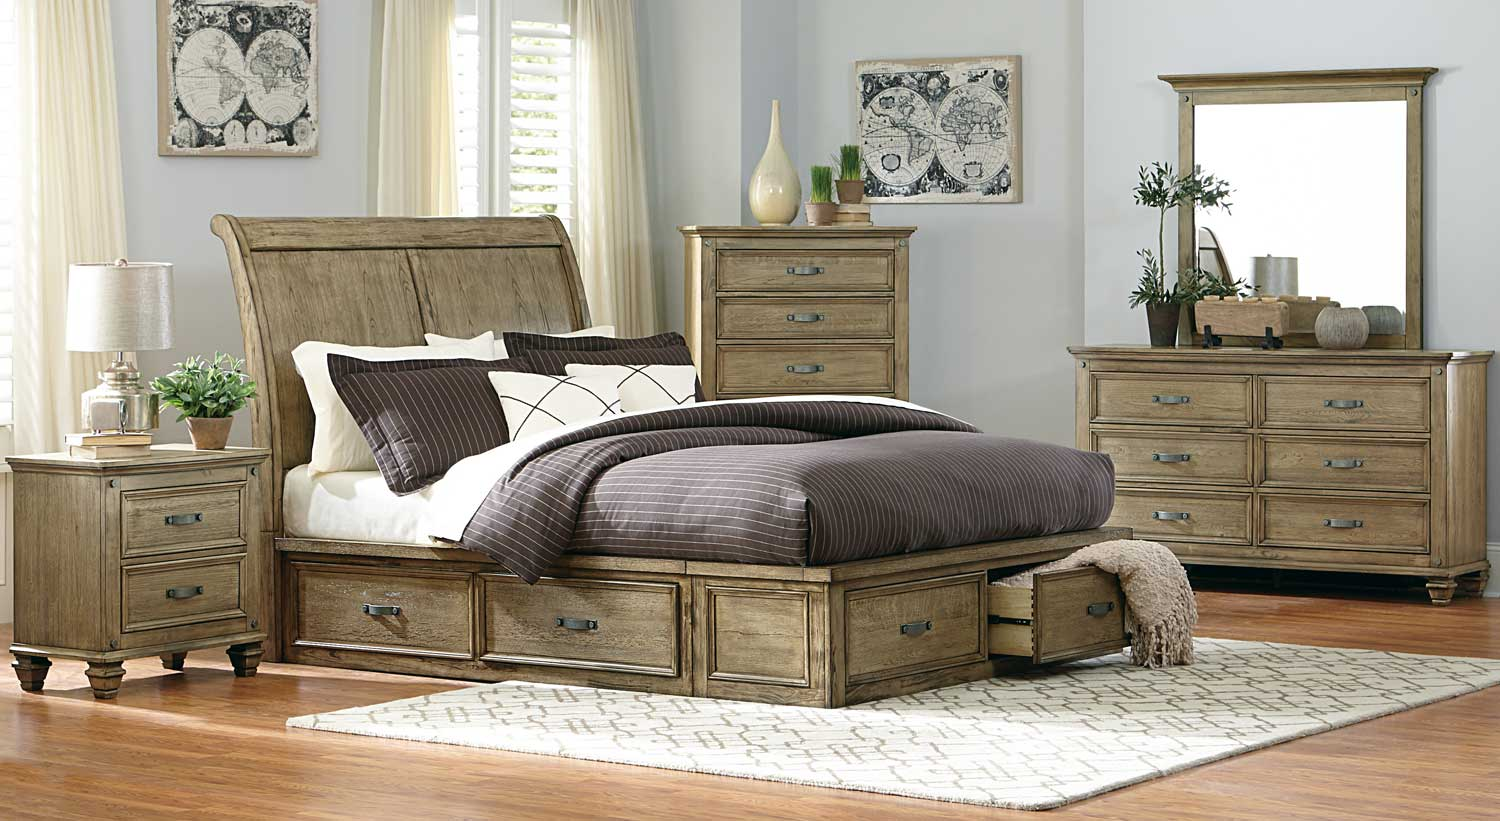 Homelegance Sylvania Platform Bedroom Set - Driftwood 2298SL-BEDROOM ...